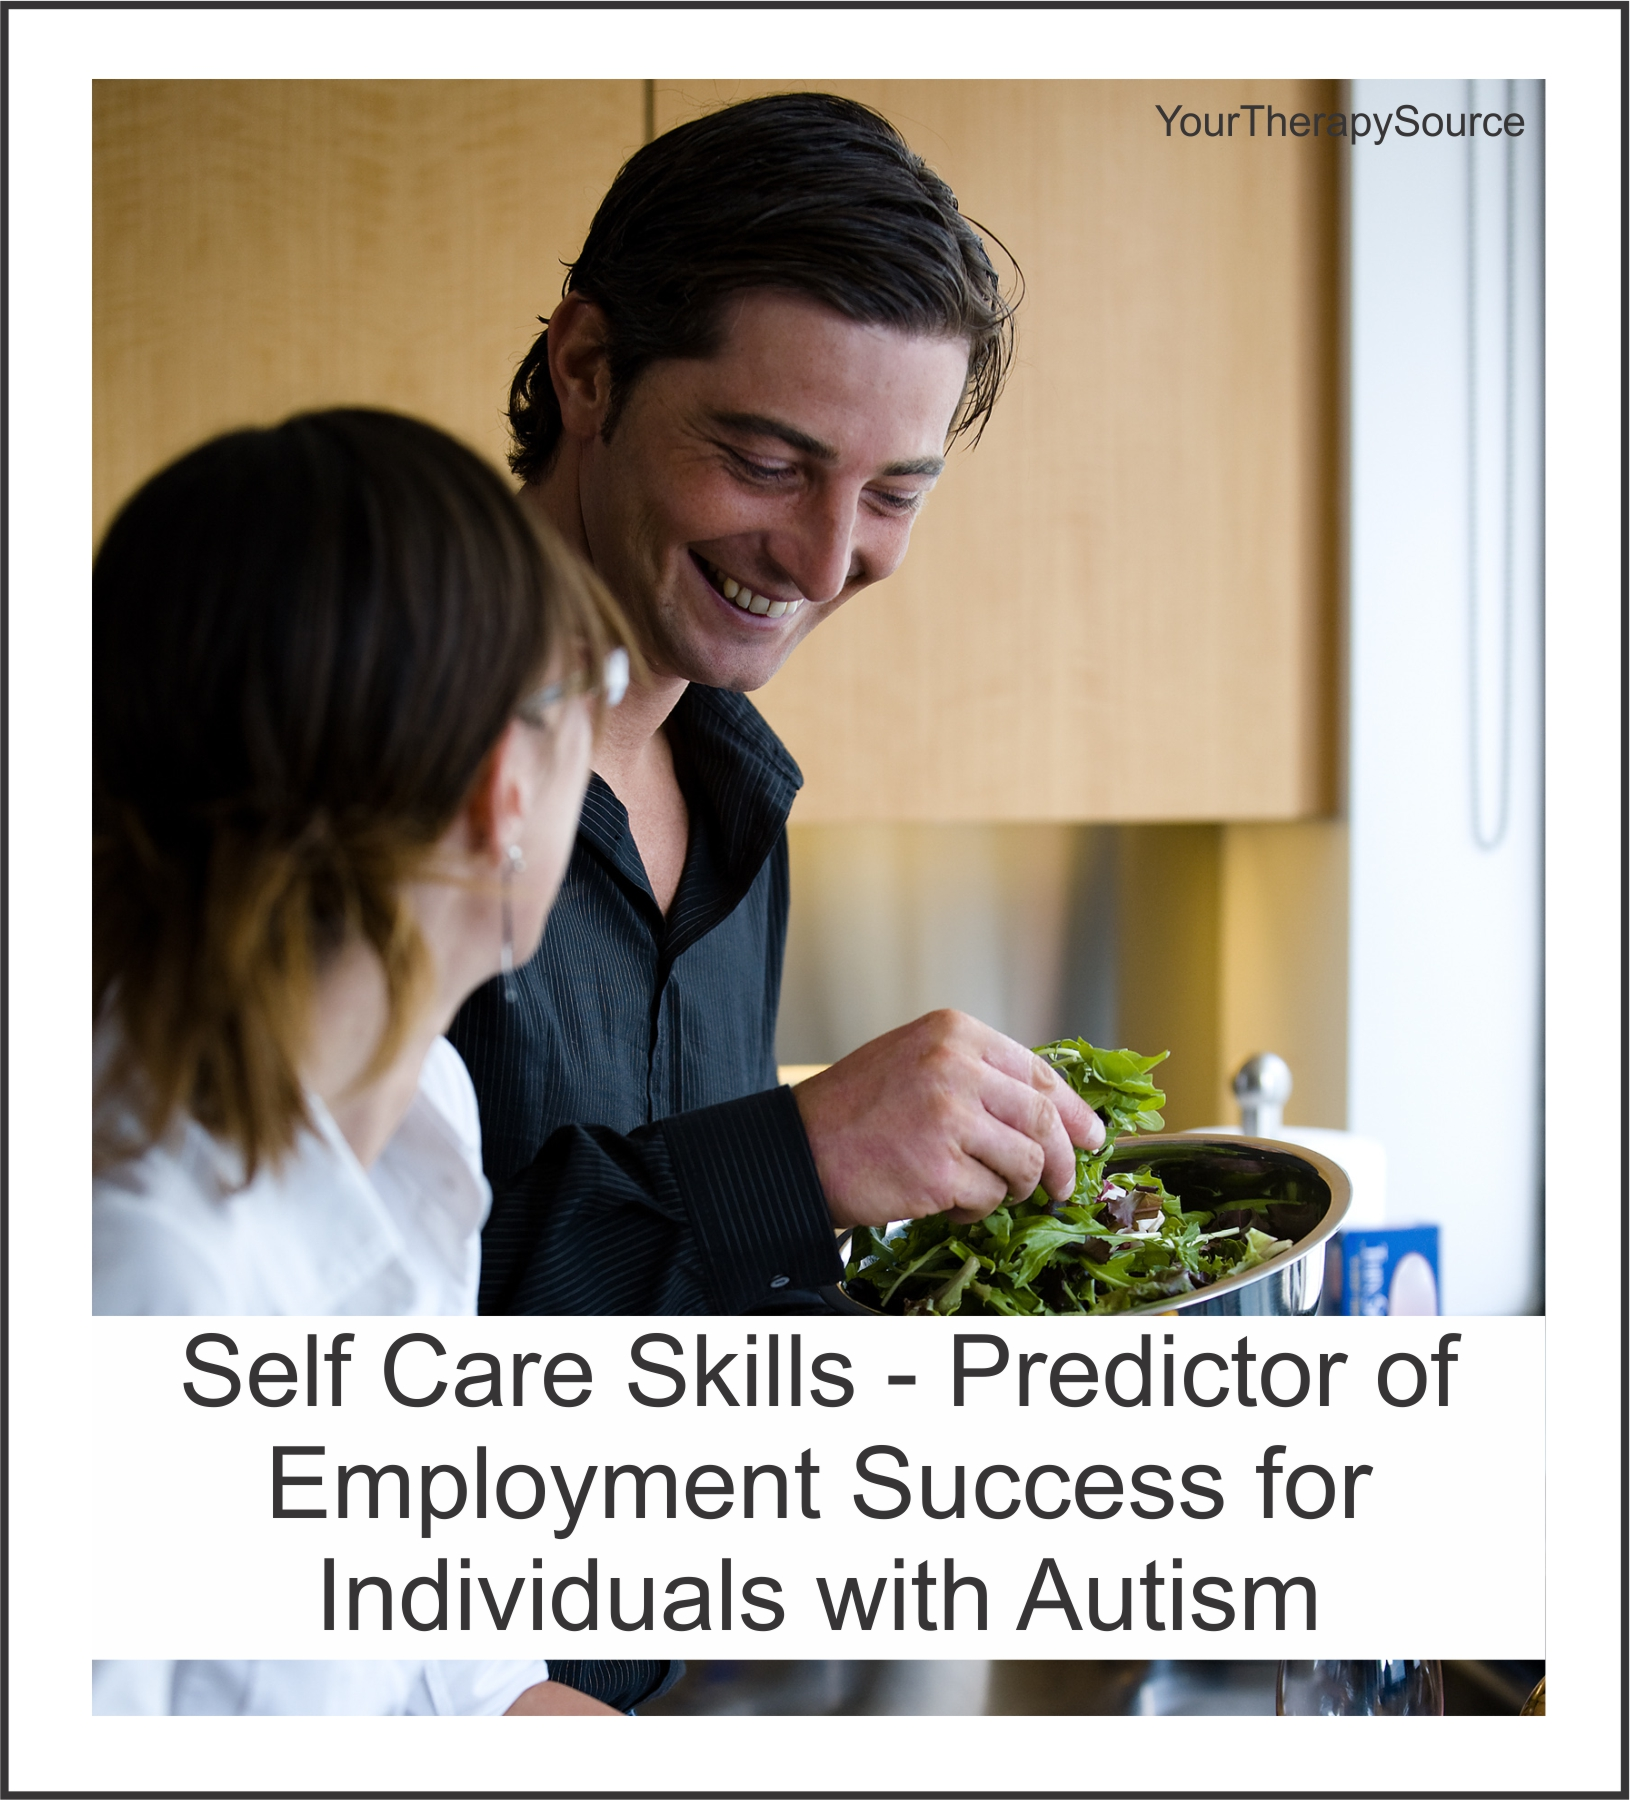 Self Care Skills - Predictor of Employment Success for Individuals with Autism